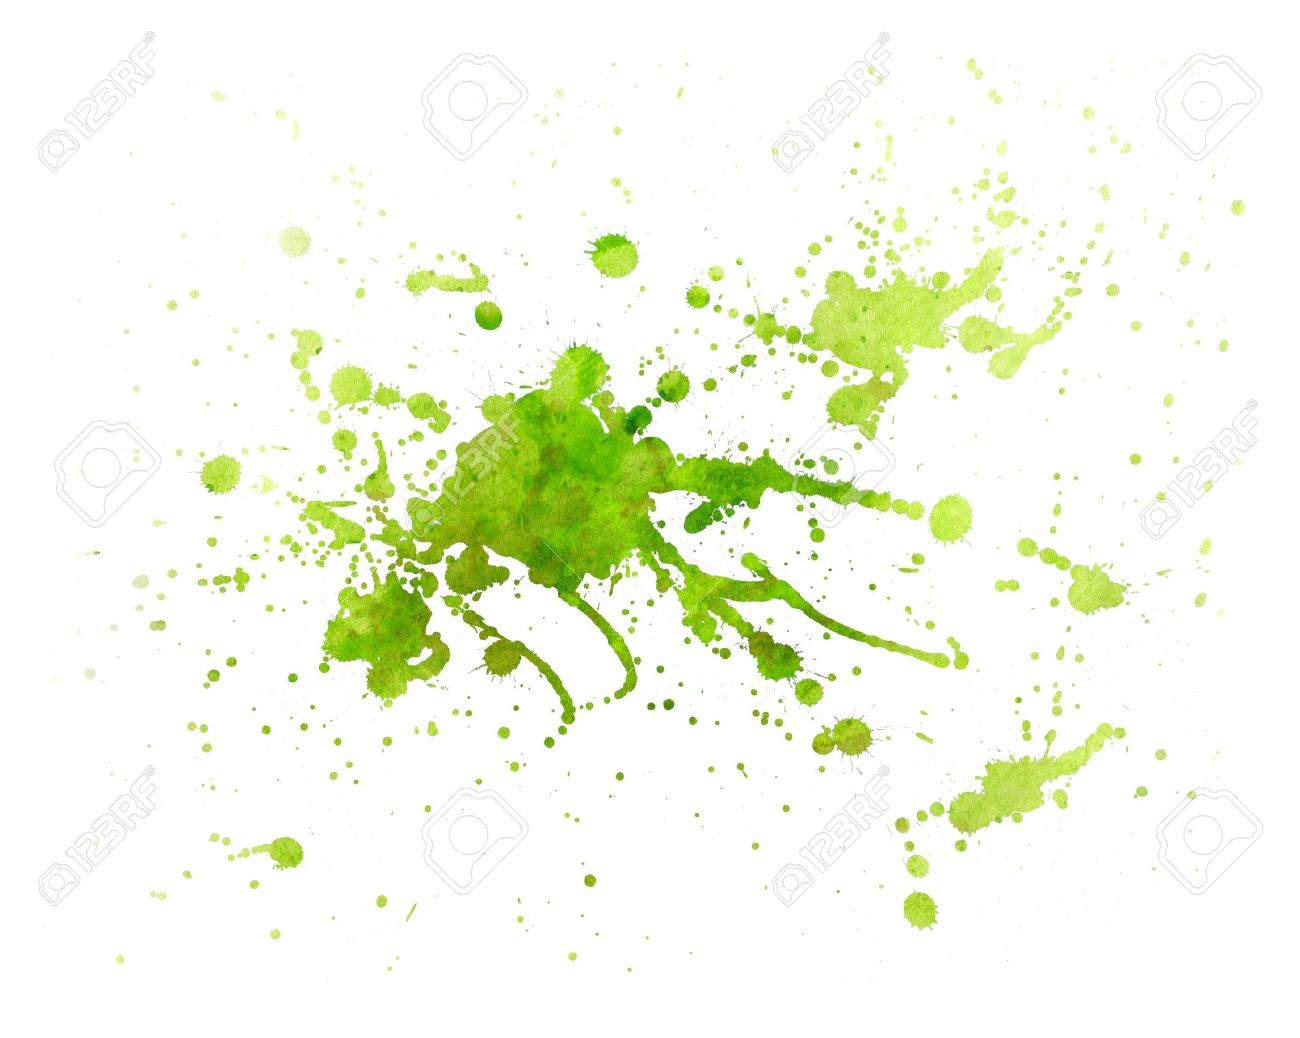 Abstract Green Painting Splash Of Water Color With Texture Stock